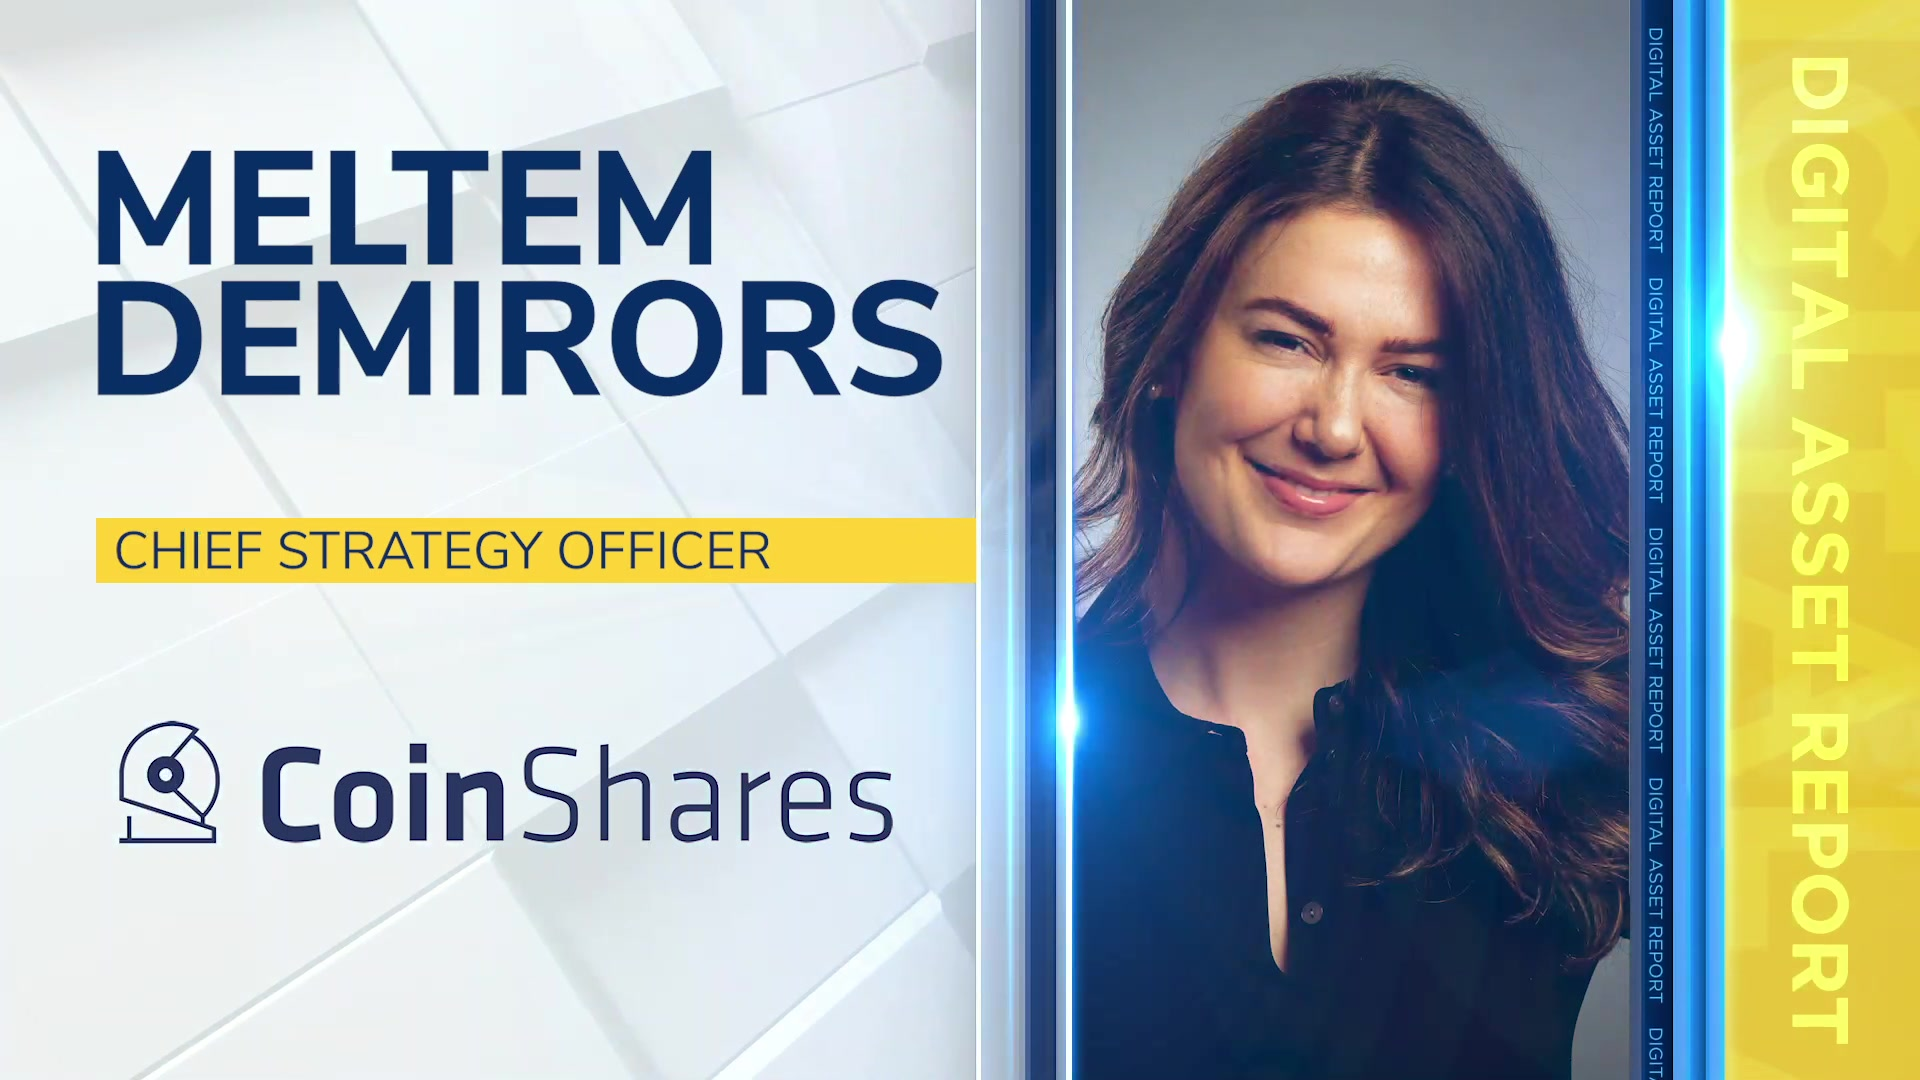 CNBC Africa - Meltem Demirors, Chief Strategy Officer ofCoinShares